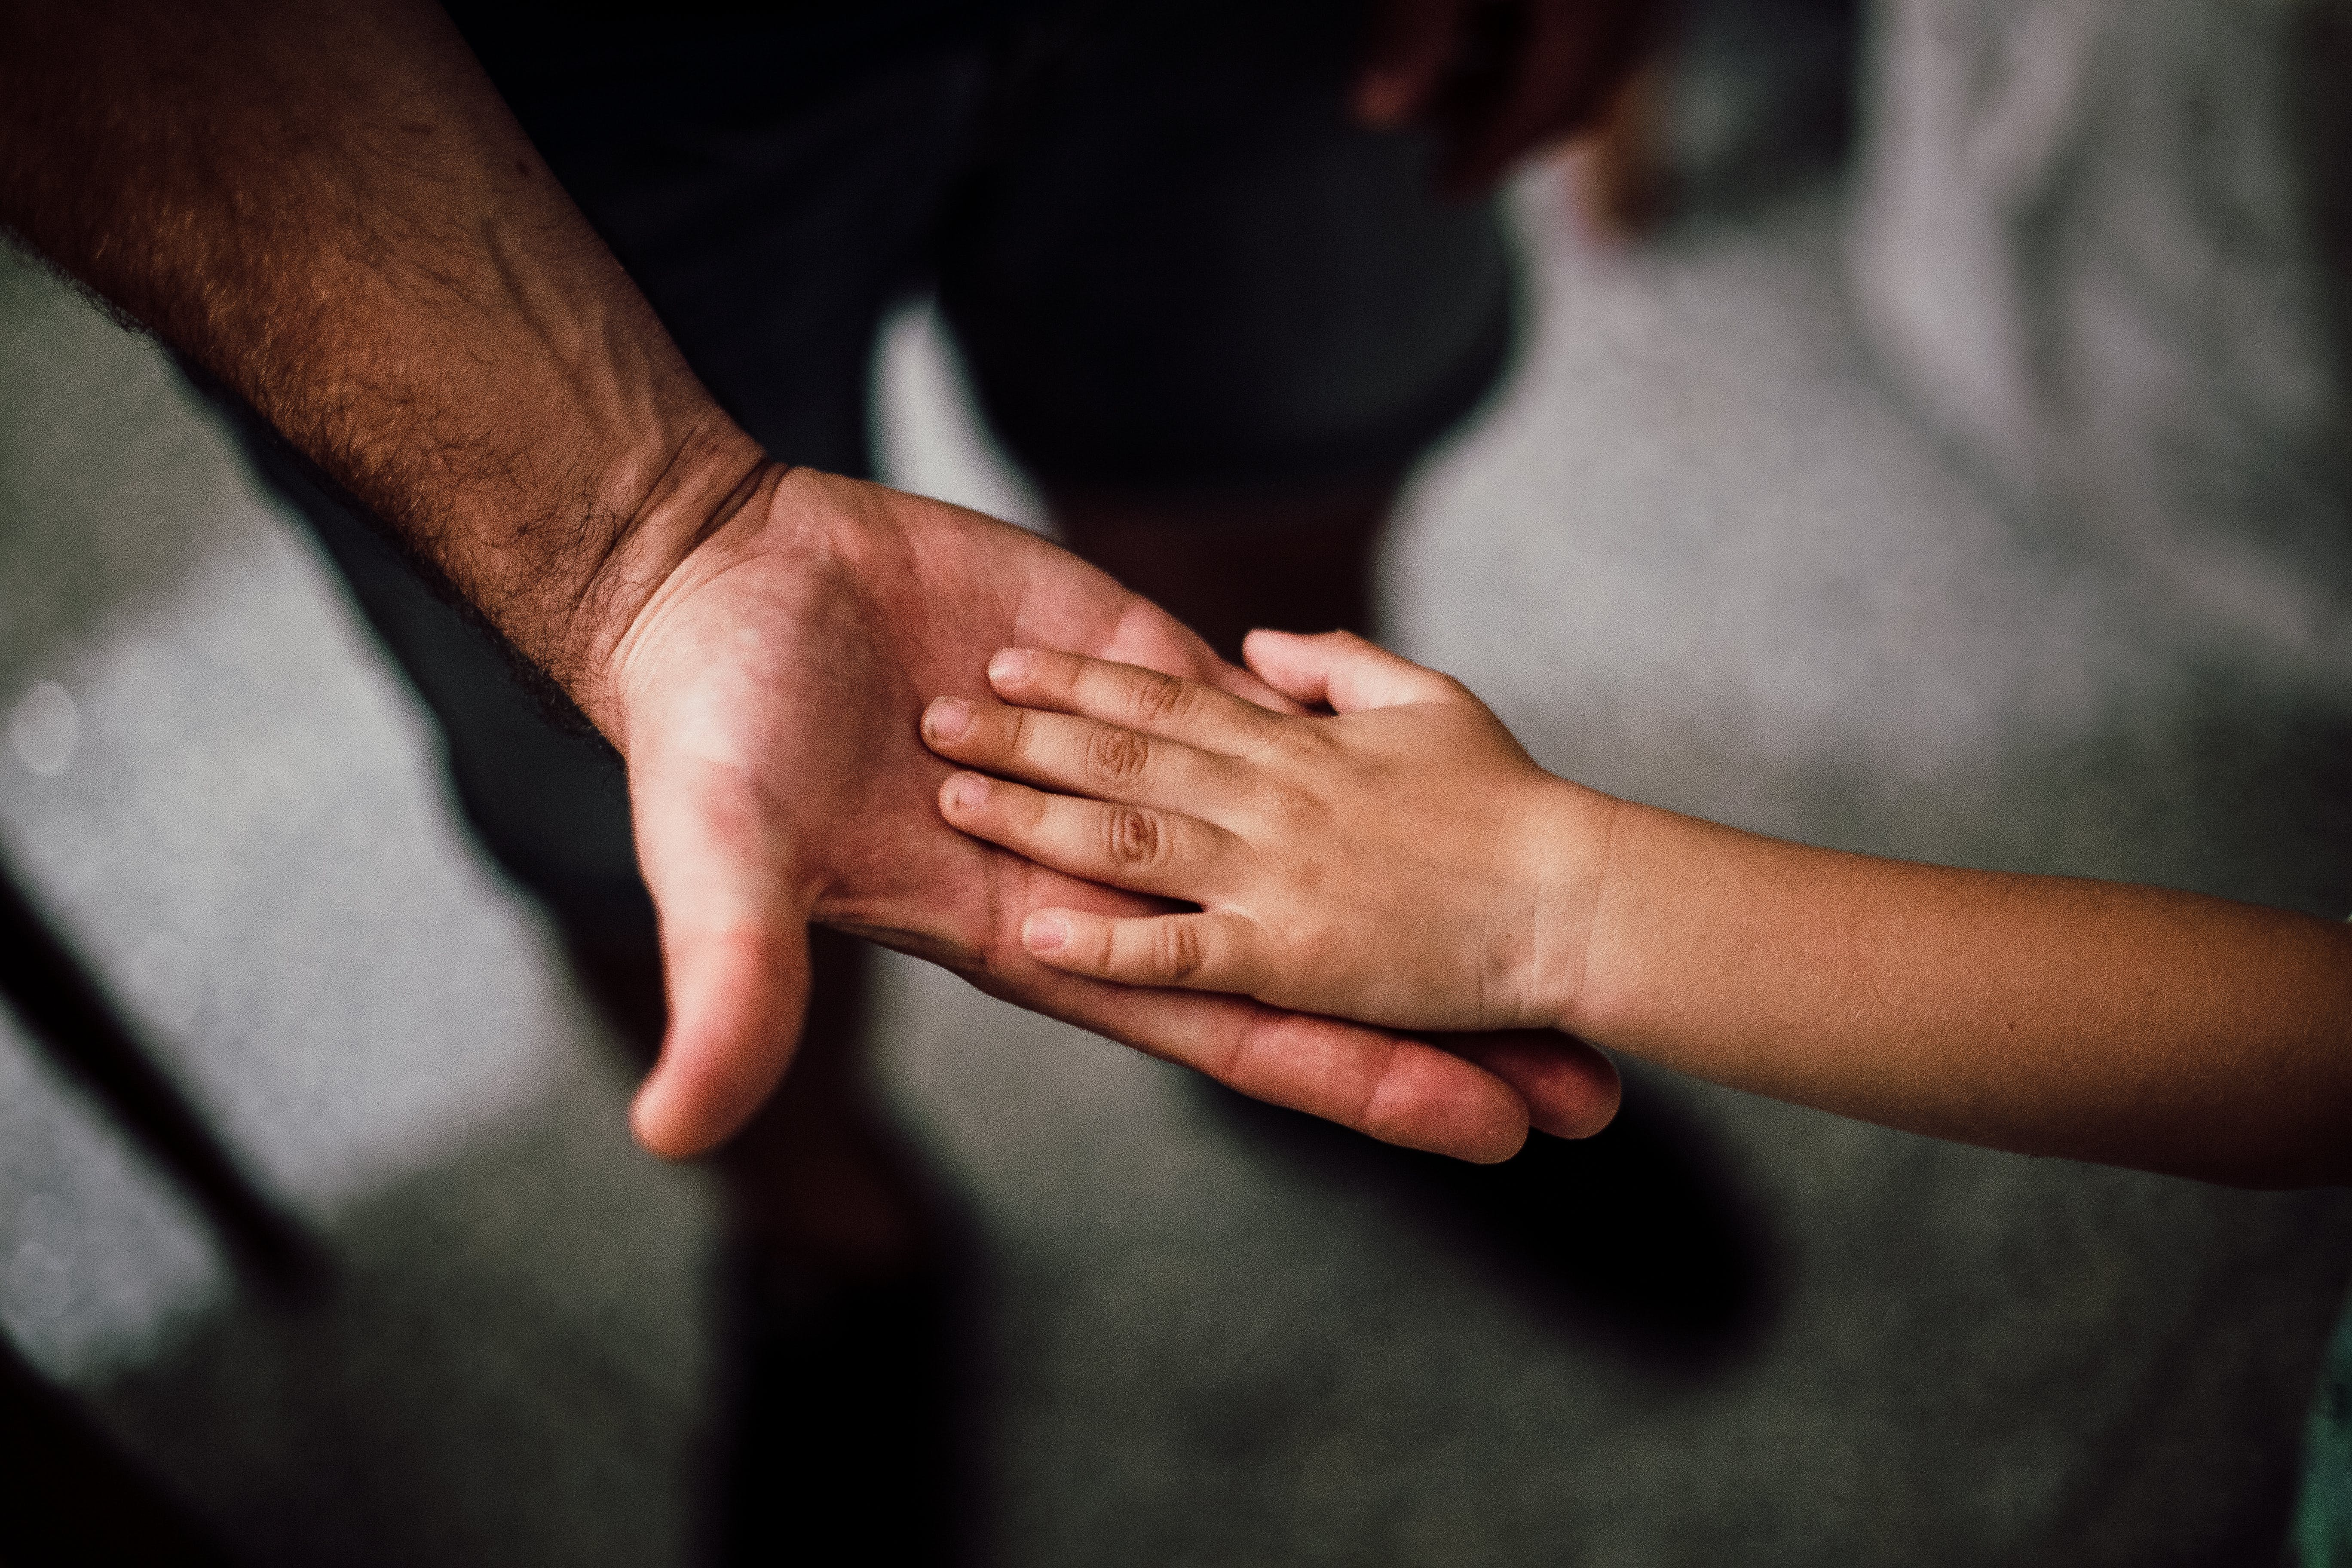 Selective Focus Photography of Child's Hand on Person's Palm